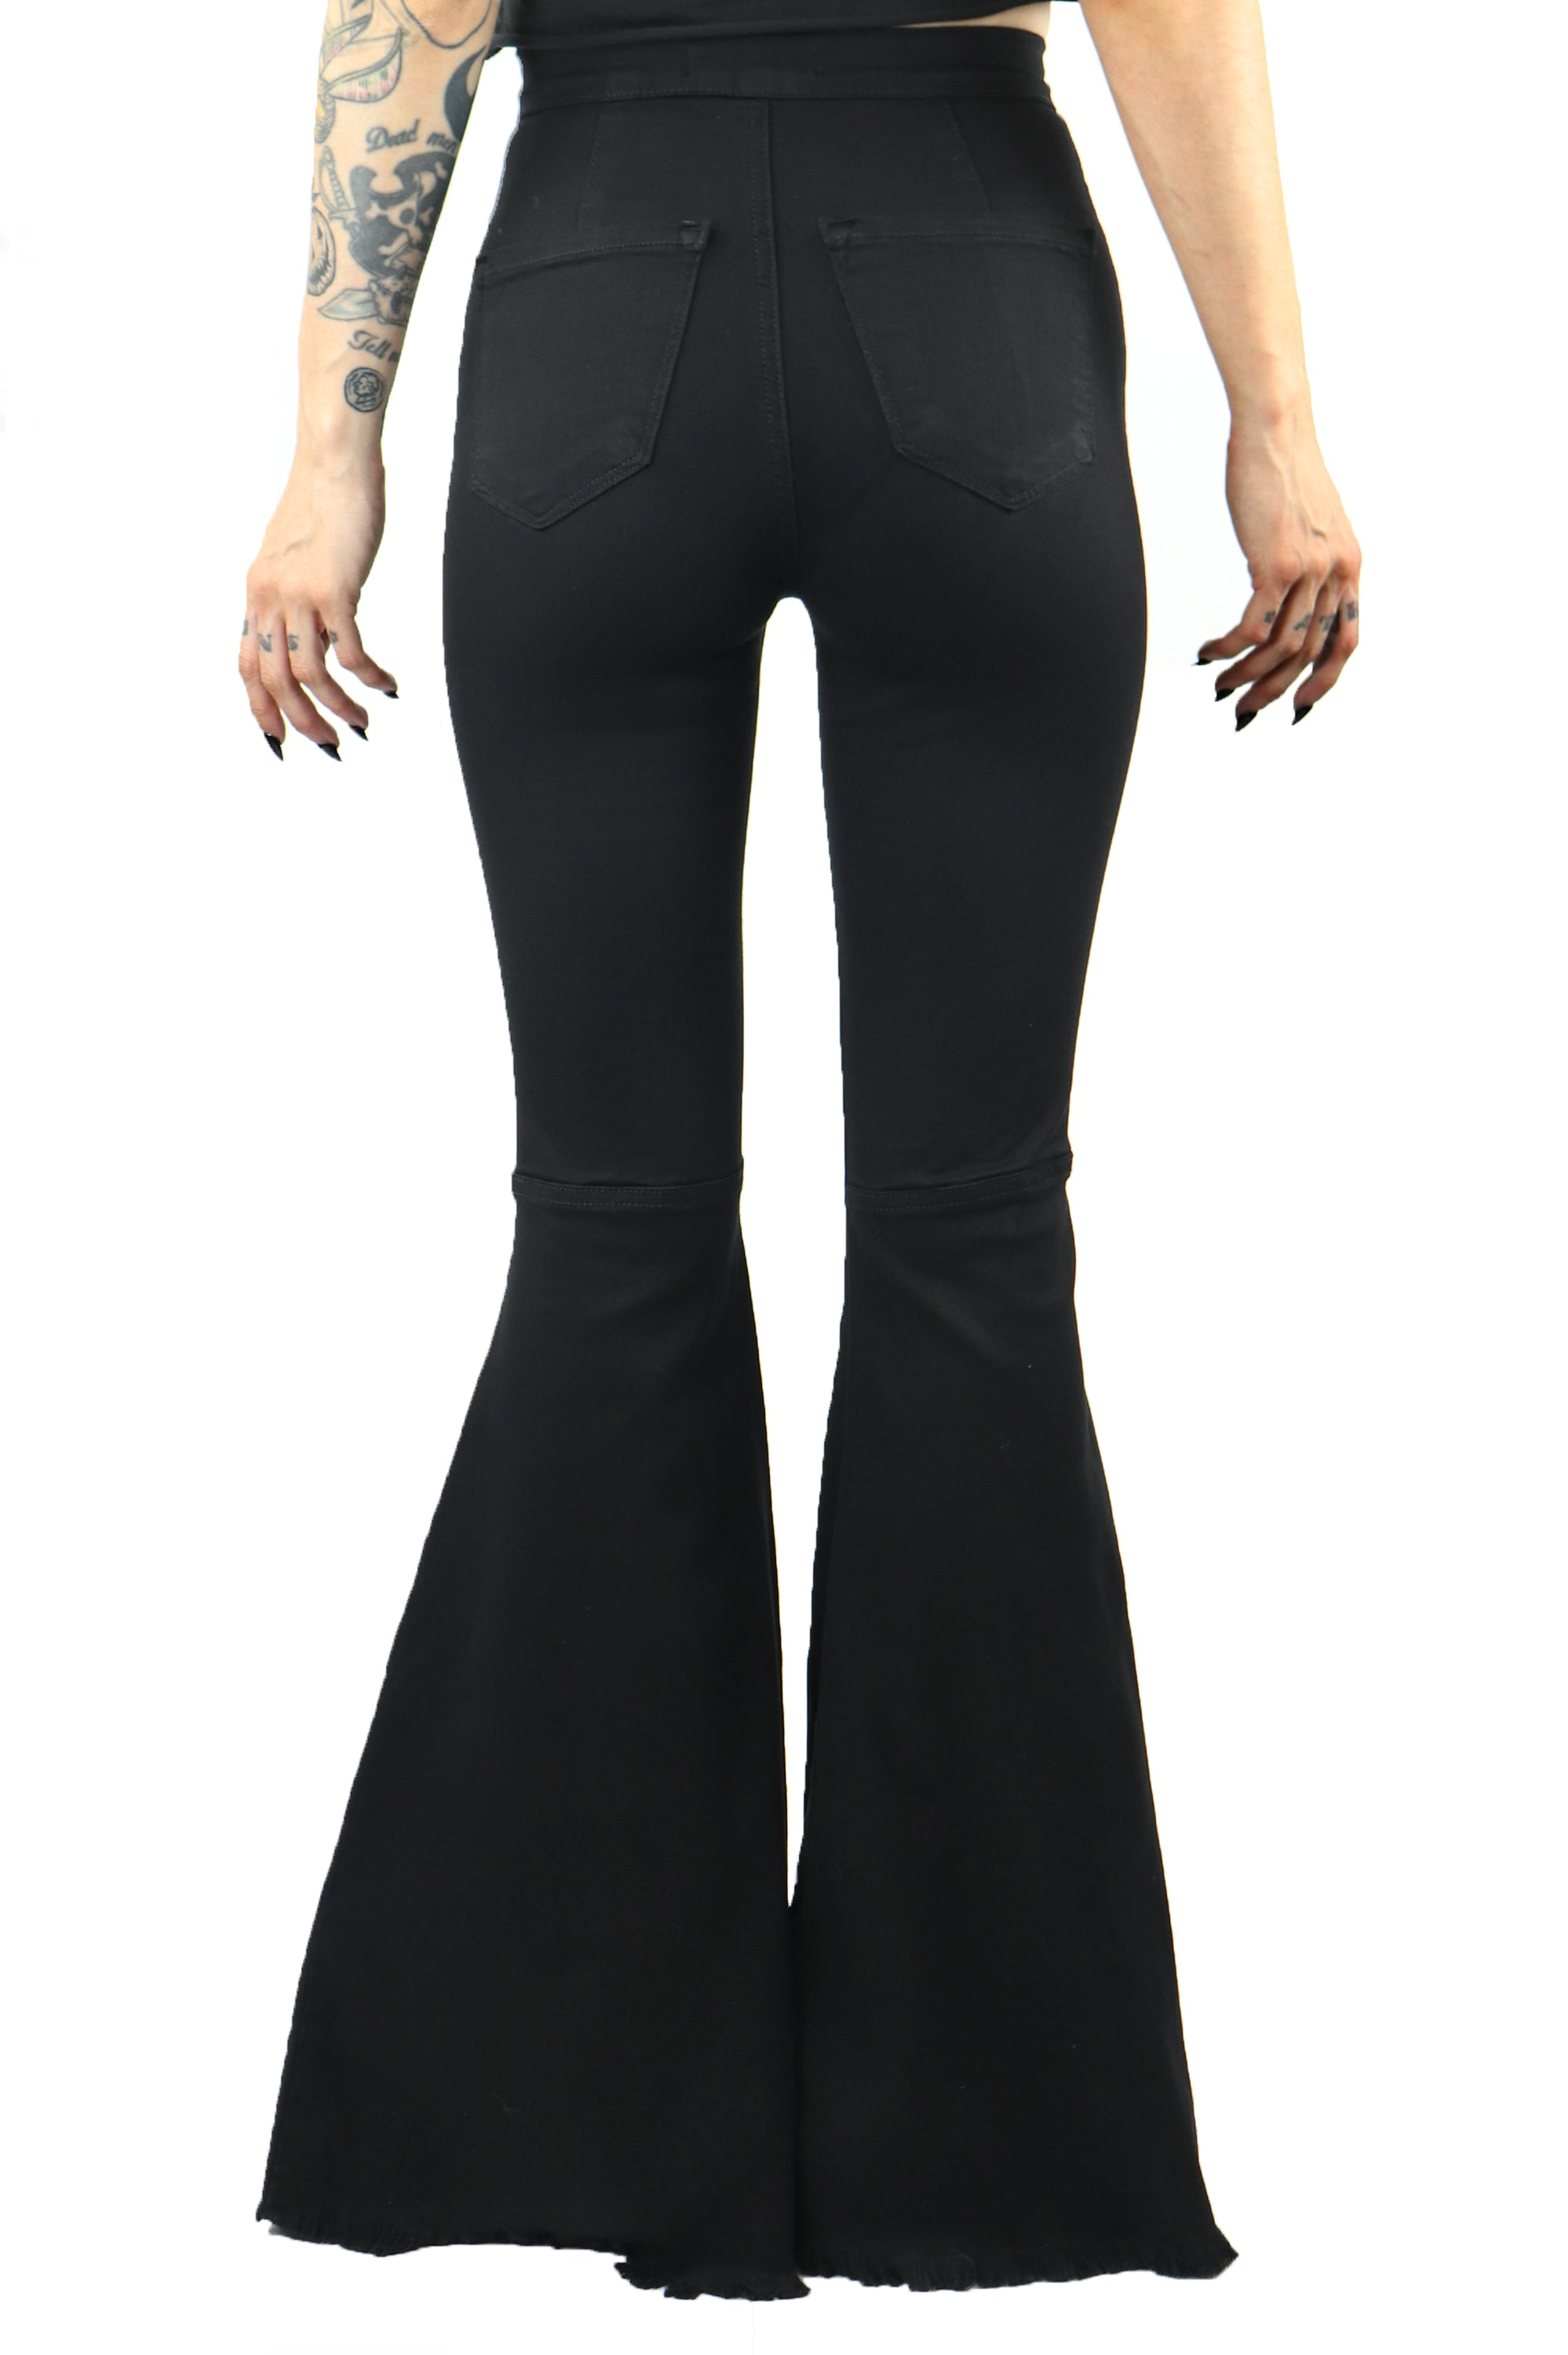 Janis Extra Wide Stretch Bellbottom Jeans